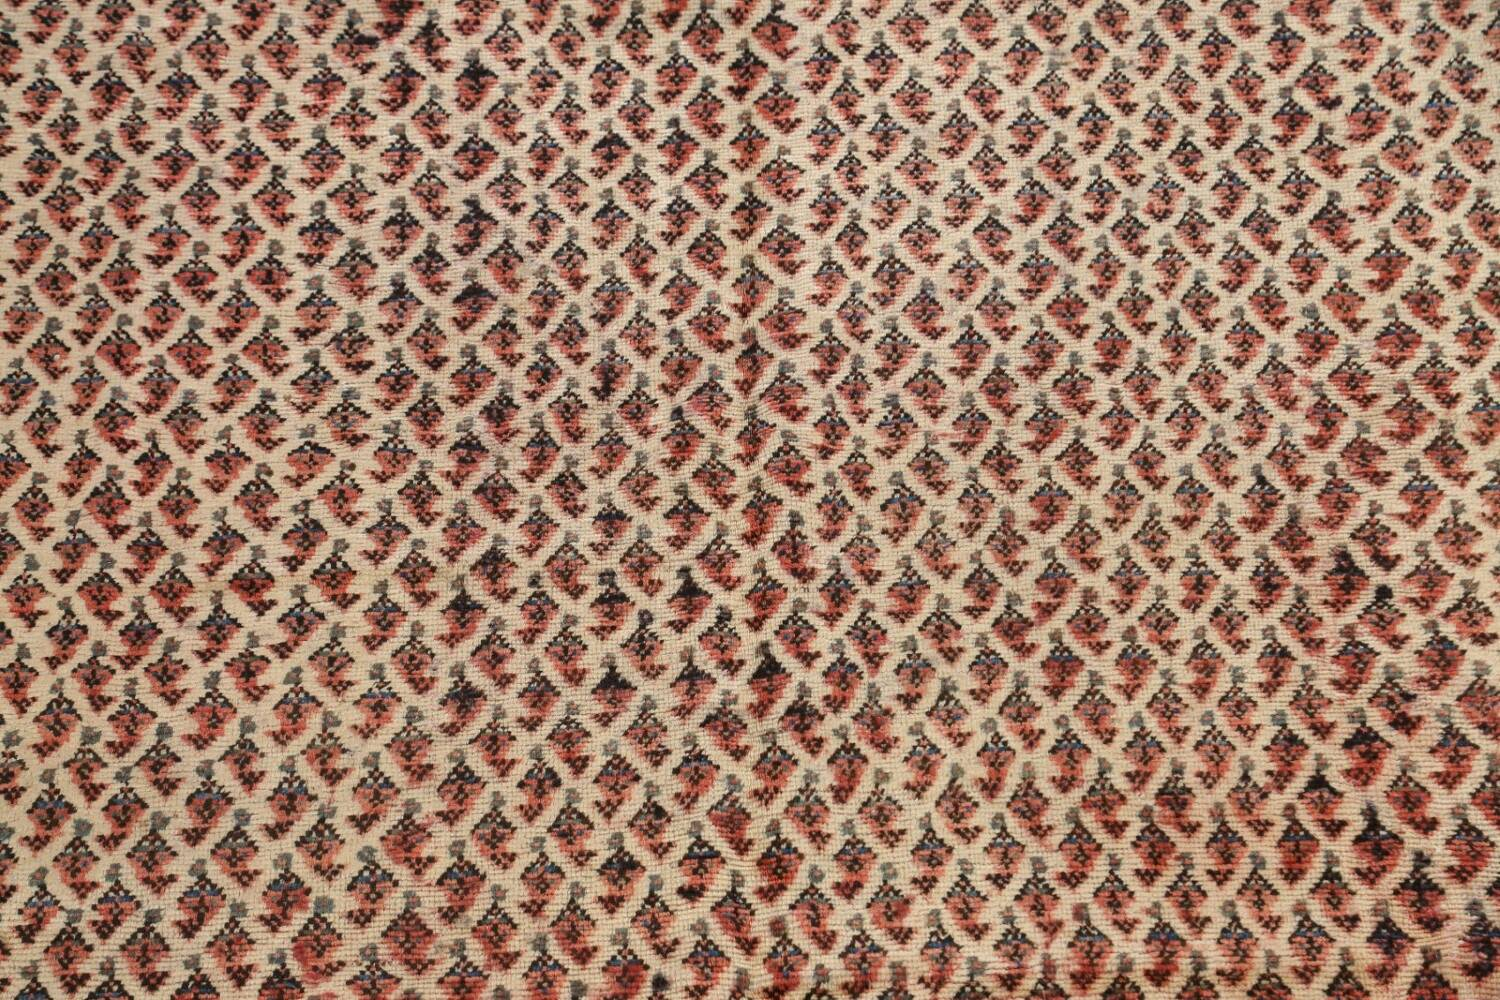 All-Over Boteh Botemir Persian Area Rug 7x11 image 4